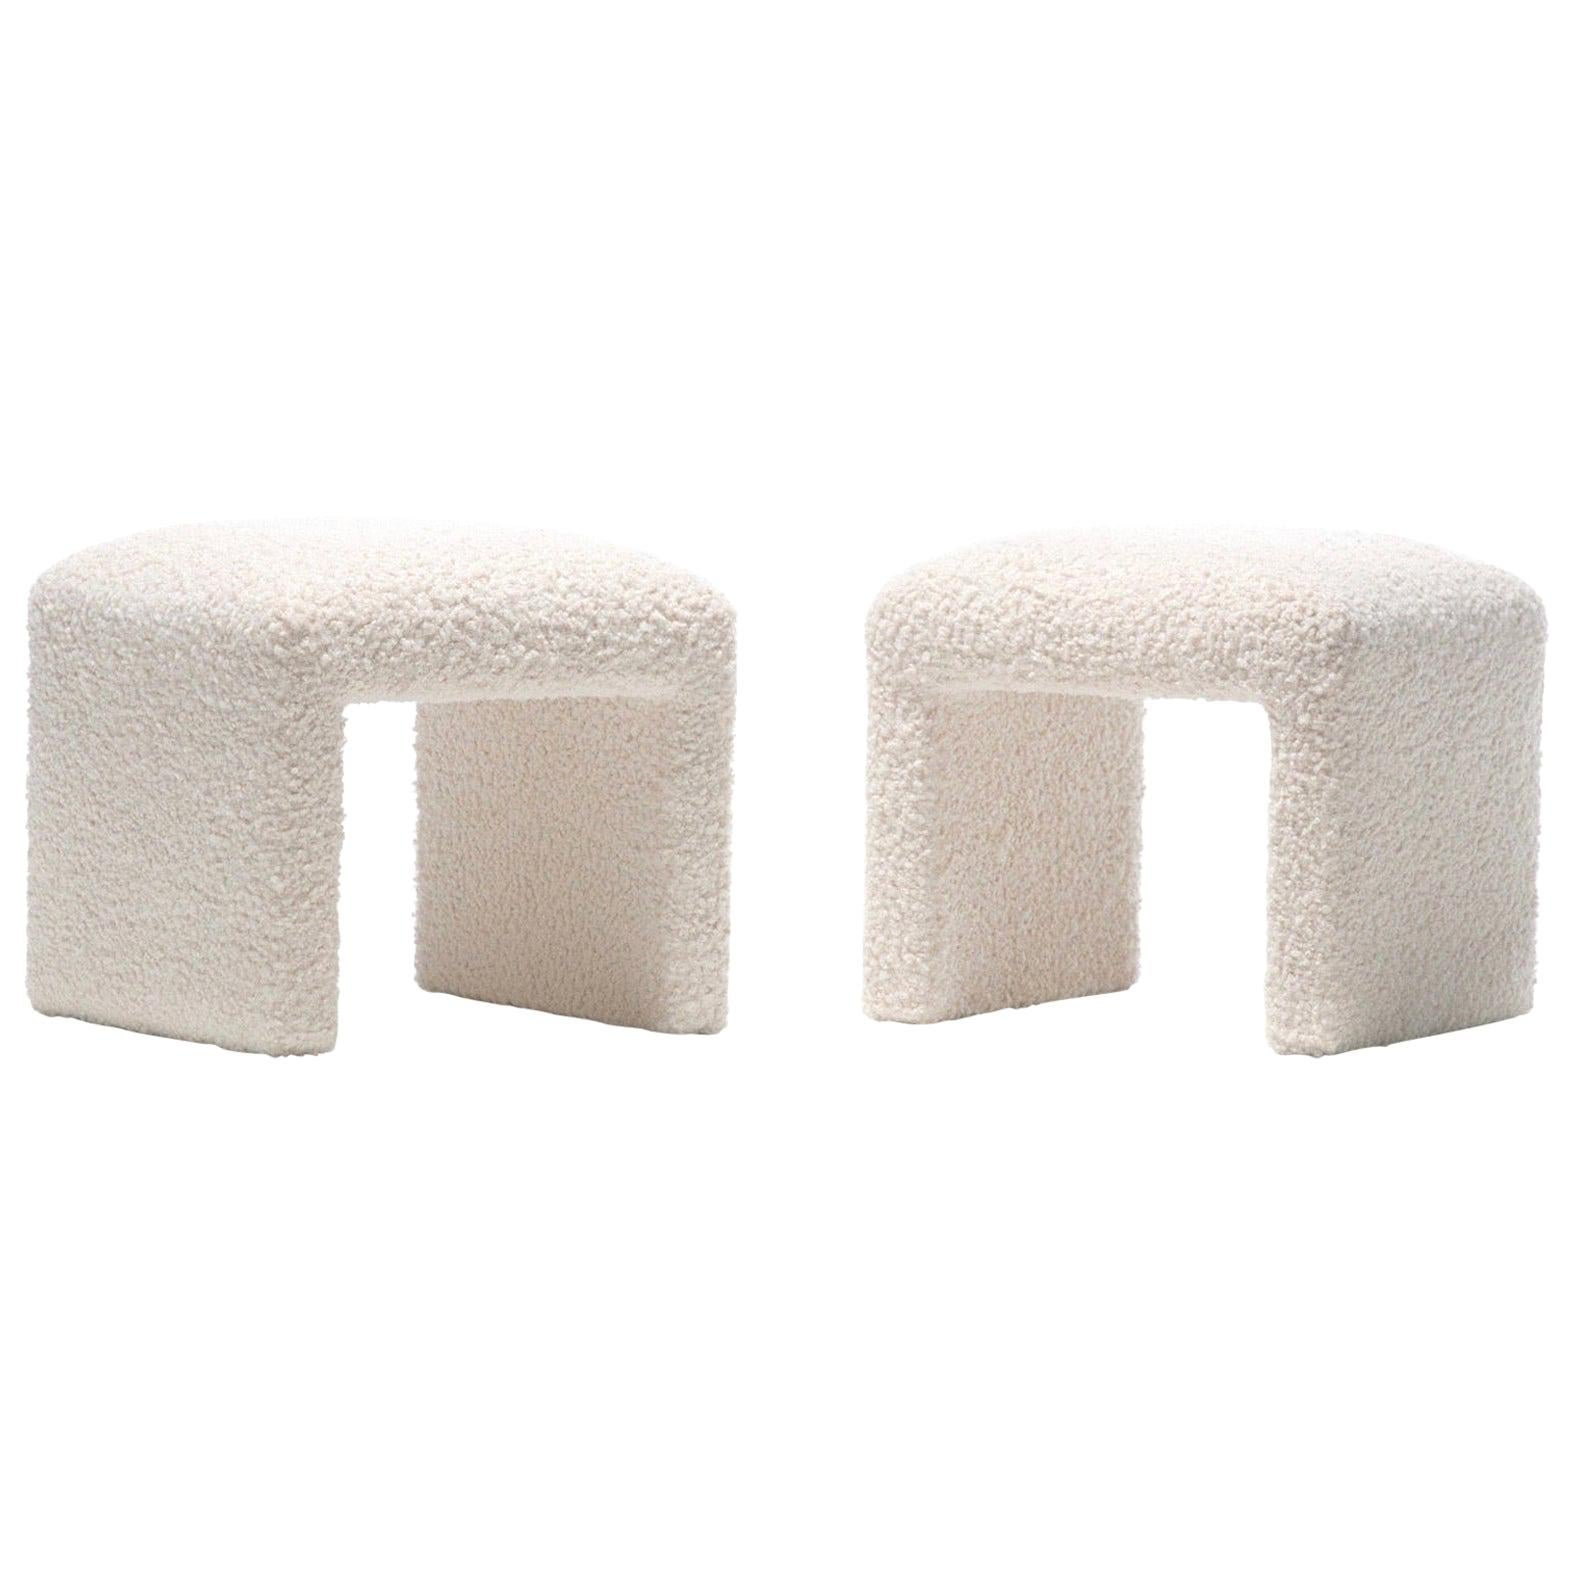 Pair of Waterfall Benches in Ivory Bouclé by Directional, circa 1970s